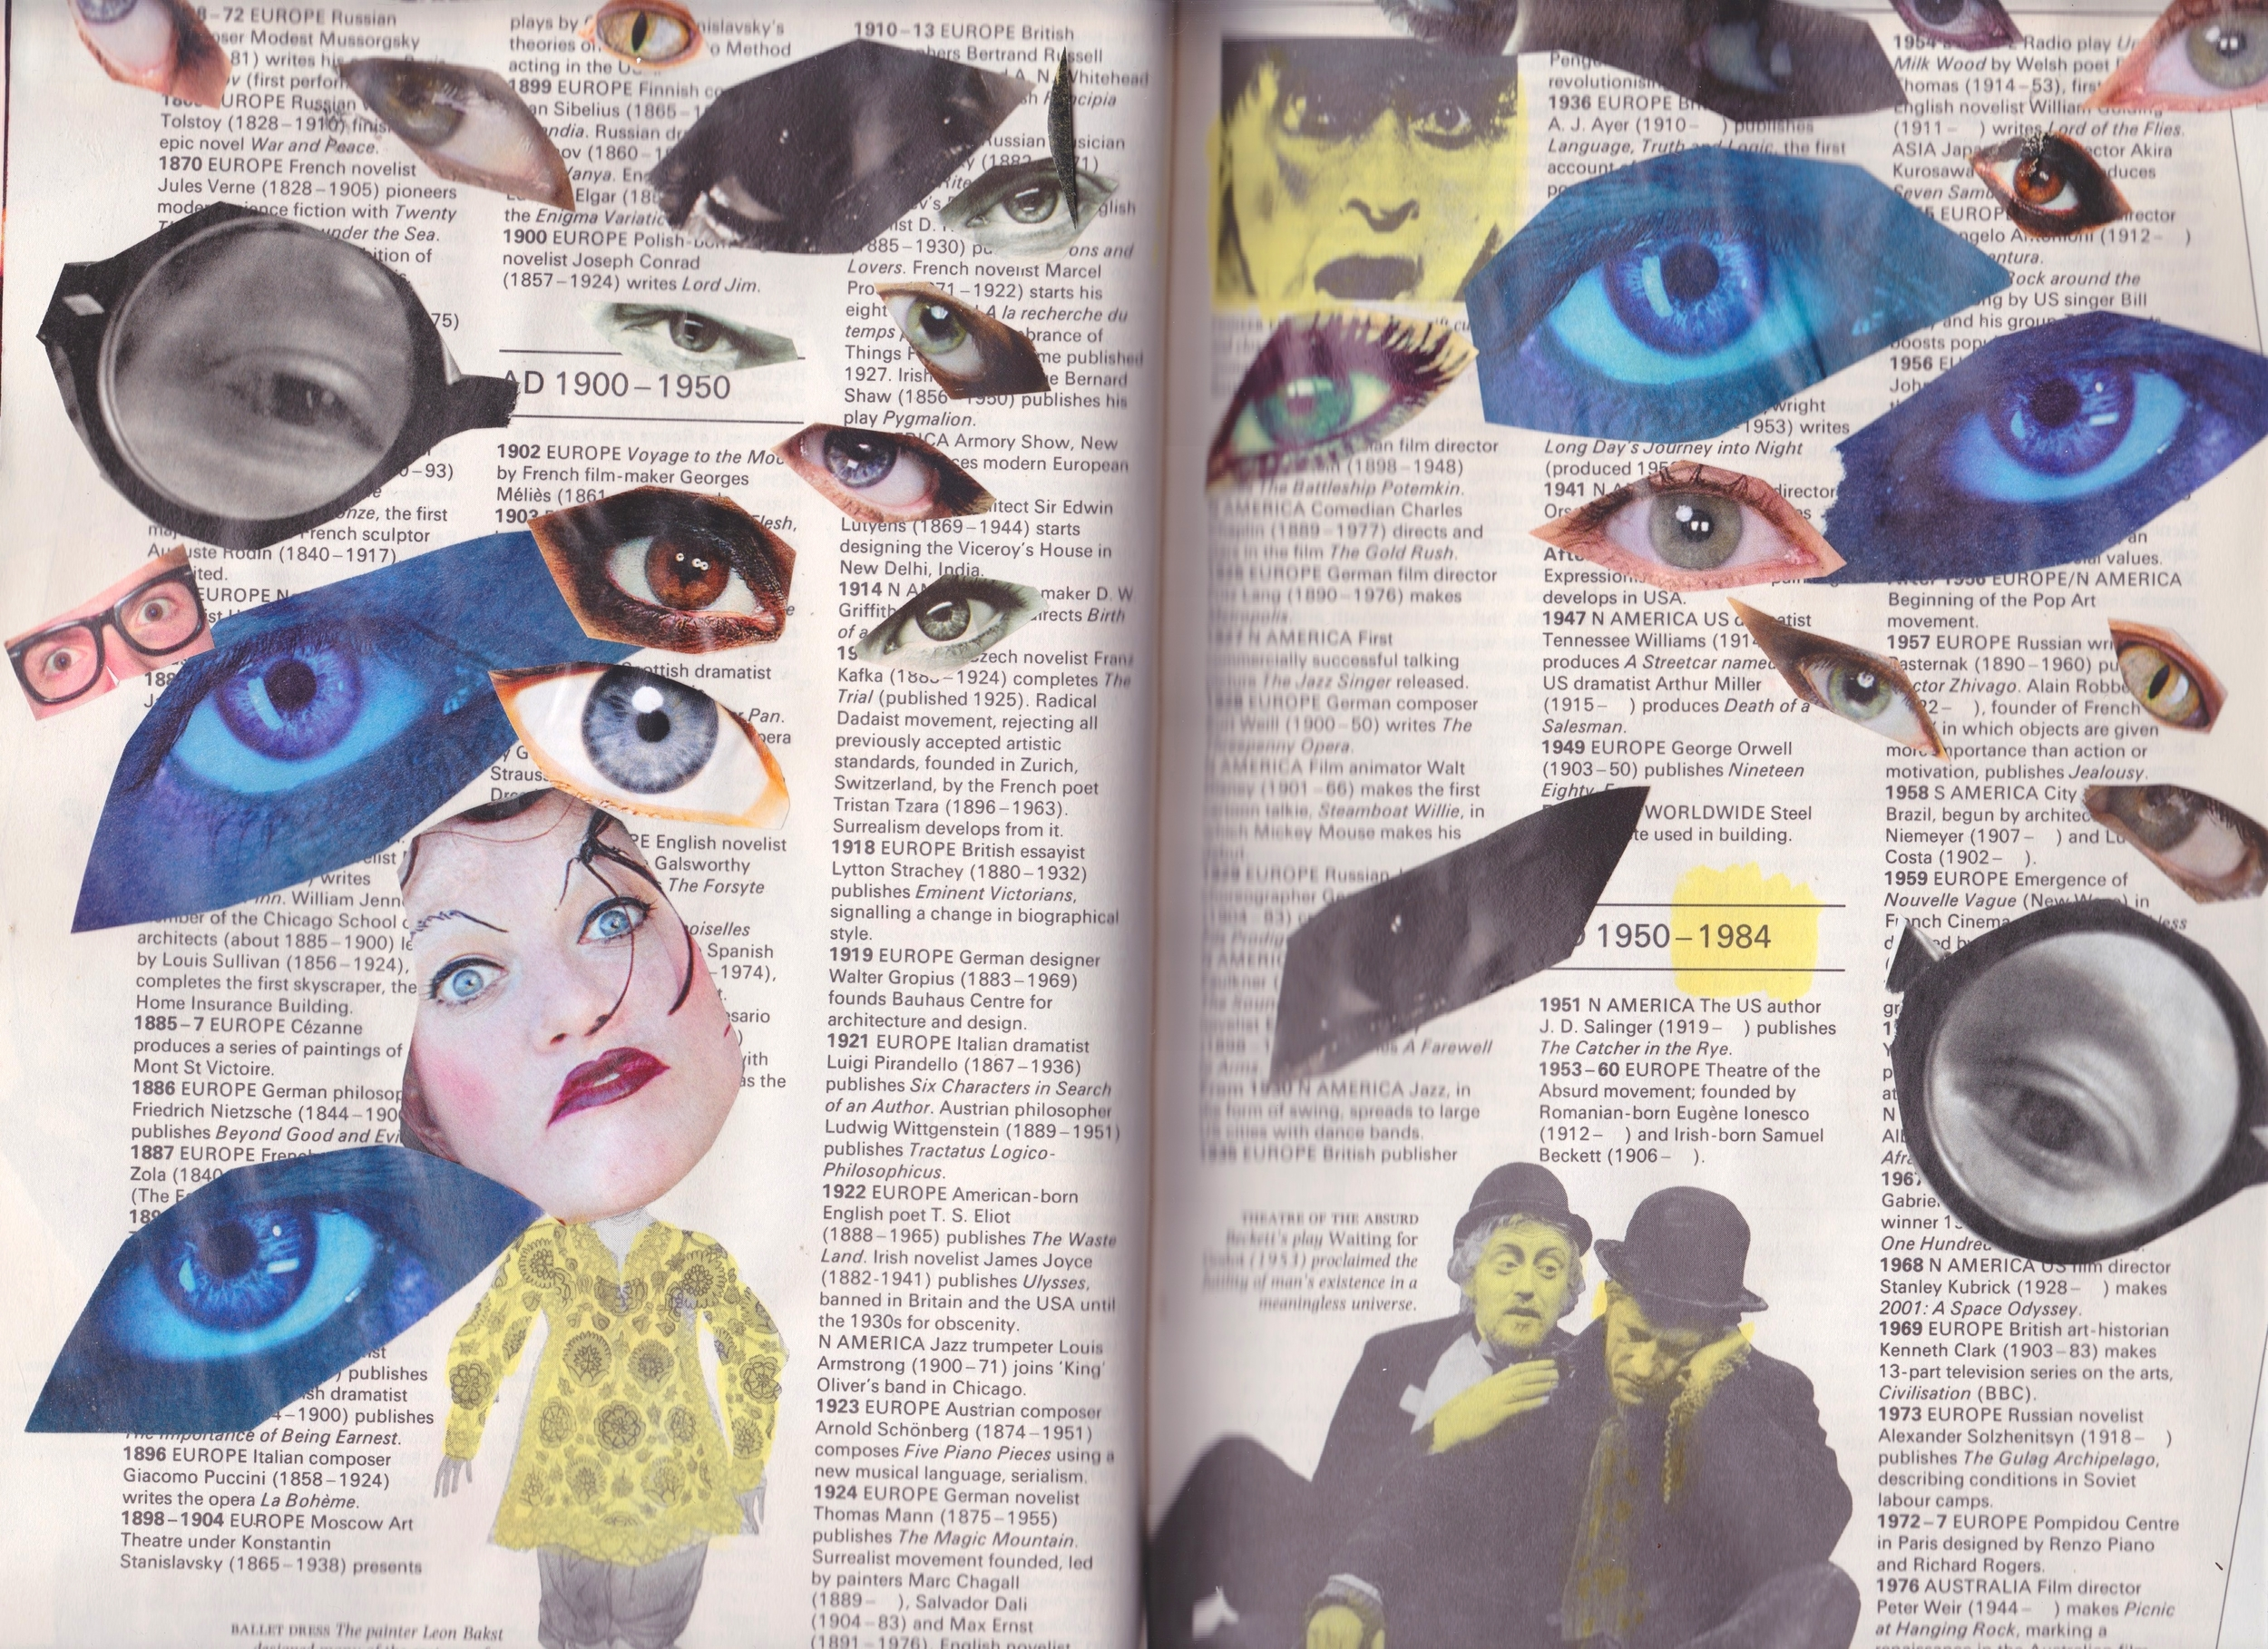 Altered Book (Reader's Digest Book of Facts) - collage & highlighter